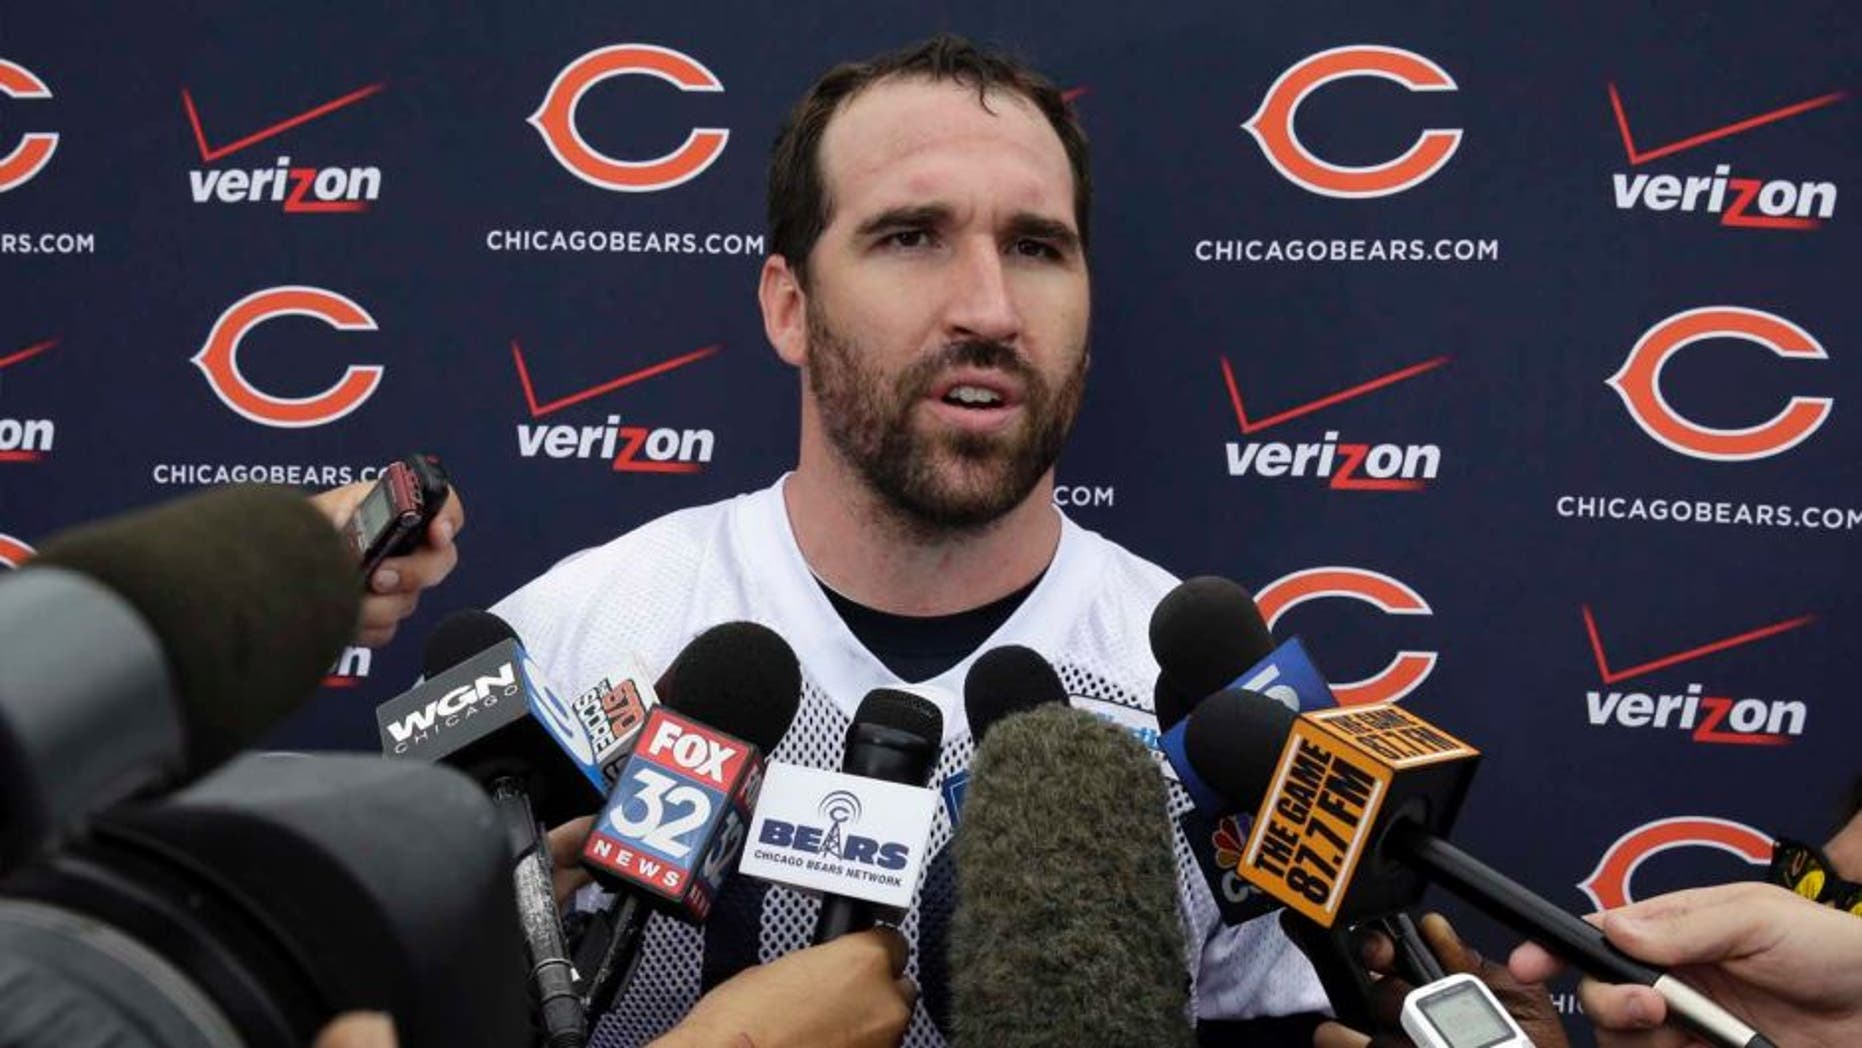 Chicago Bears defensive end Jared Allen (69) talks to the media at a news conference after the team's NFL football training camp at Olivet Nazarene University on Friday, July 25, 2014., in Bourbonnais, Ill.